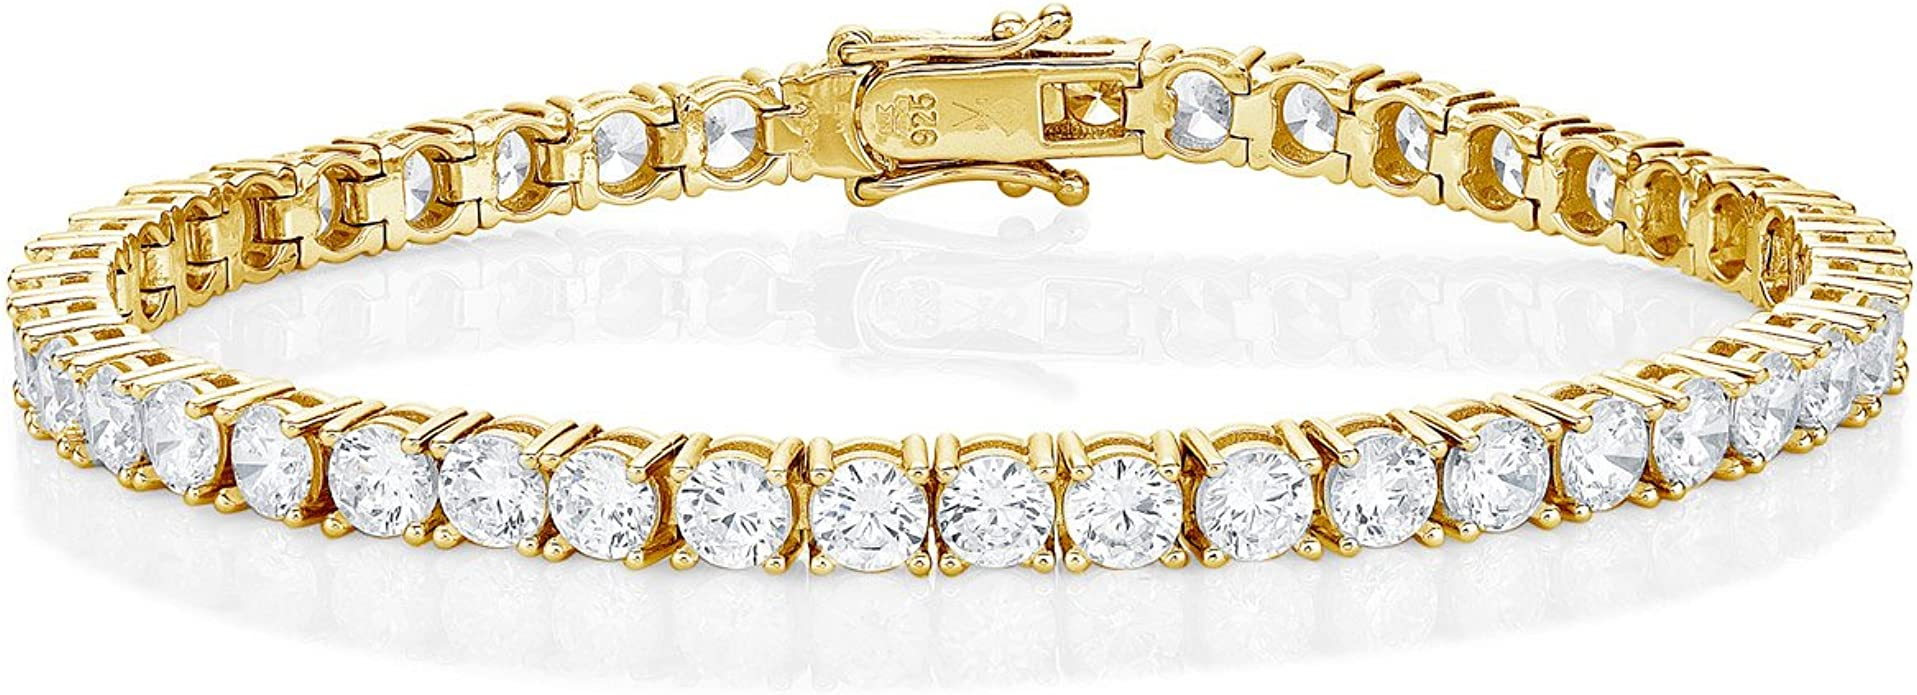 """Rhinestones Silver or Gold Plated Floral Bracelet Women Fashion Jewelry 2.5/"""" New"""